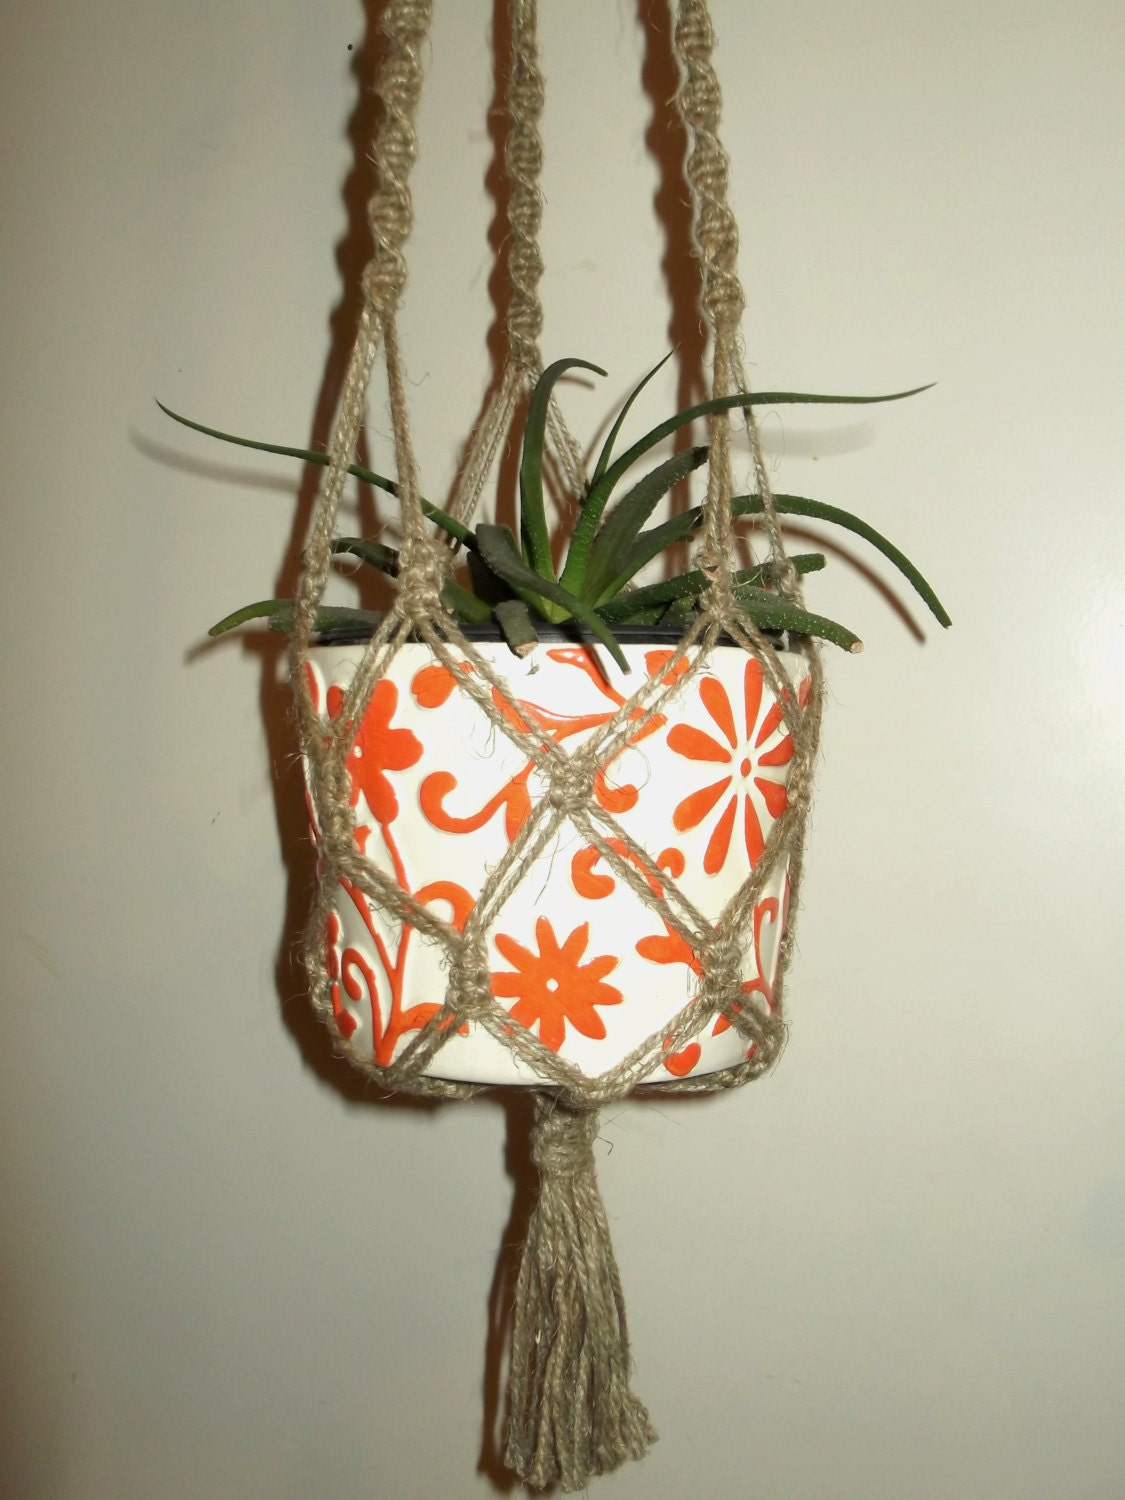 Plantes nature amicale en macram hangar de suspension pot - Suspension pot de fleur macrame ...